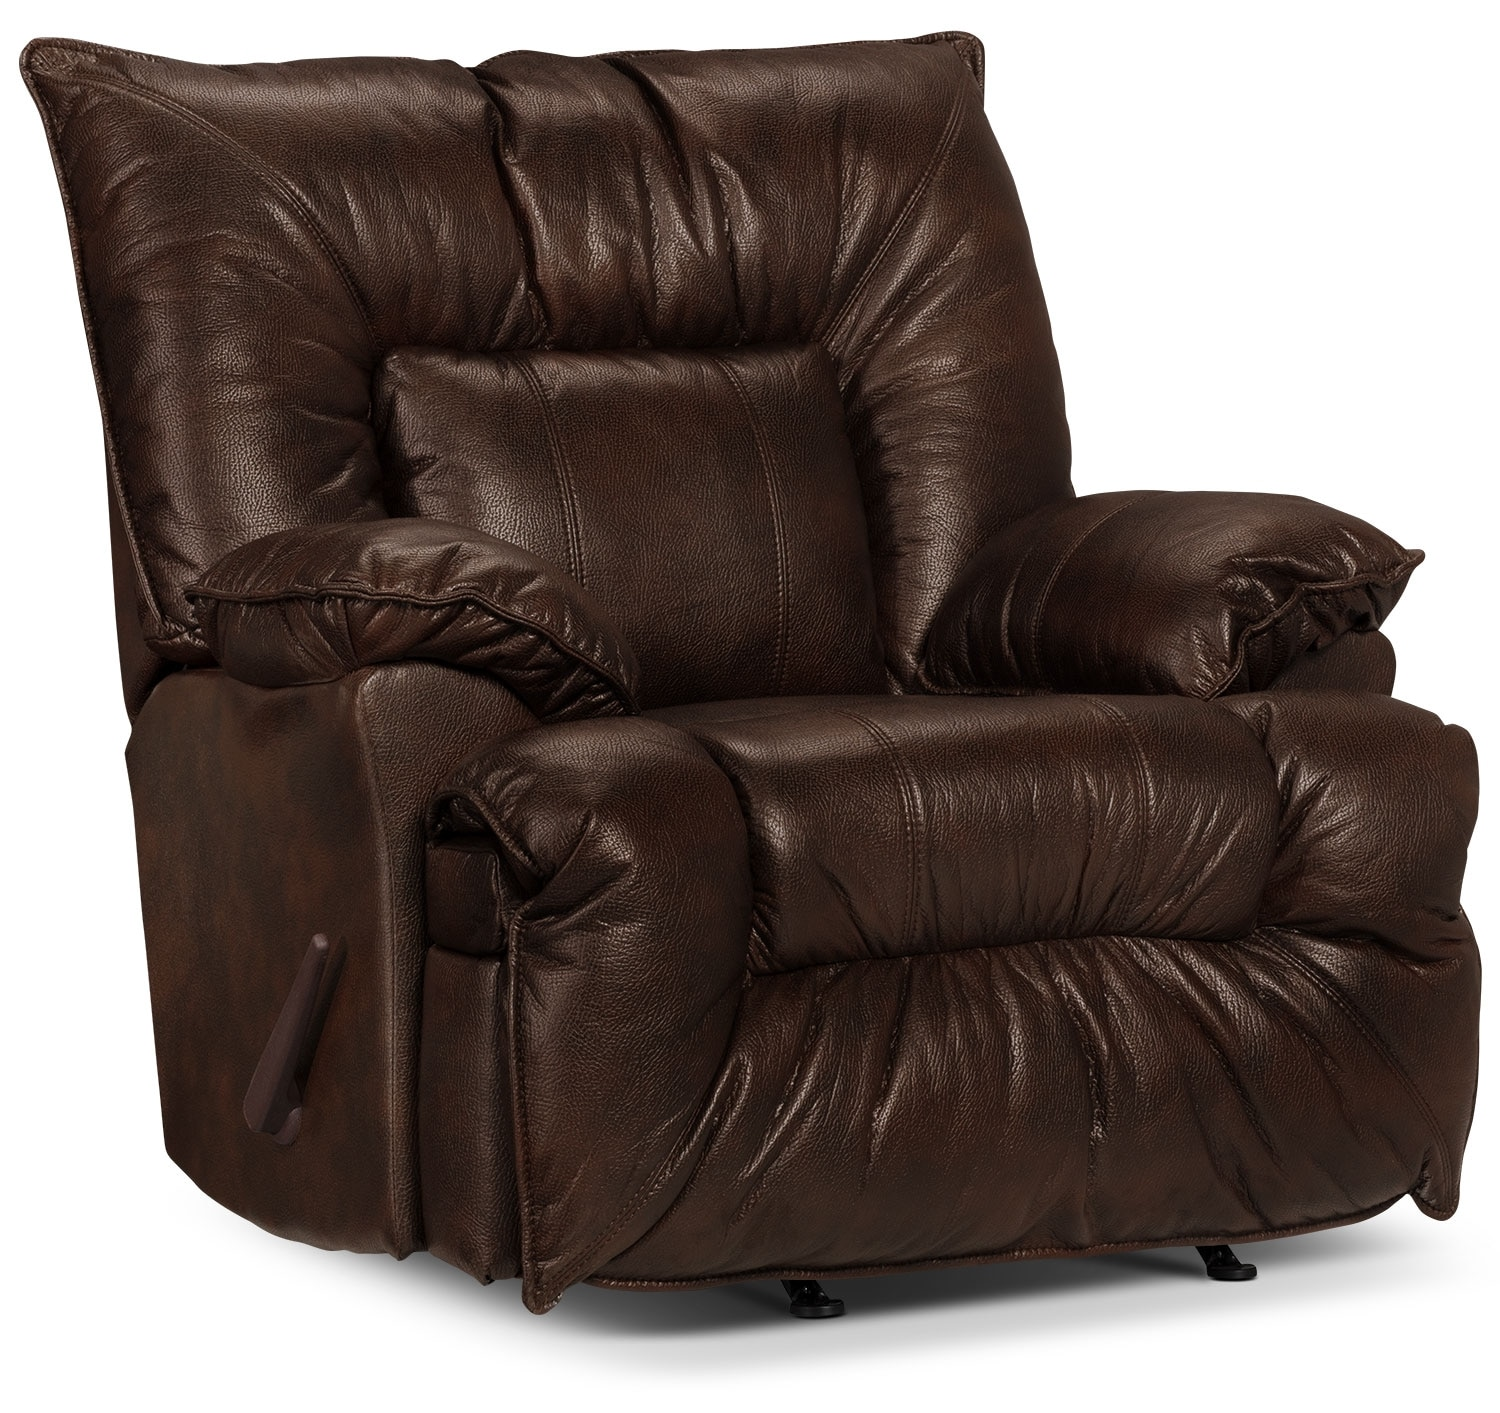 Living Room Furniture - Designed2B Recliner 7726 Genuine Leather Rocker Chair - Chocolate